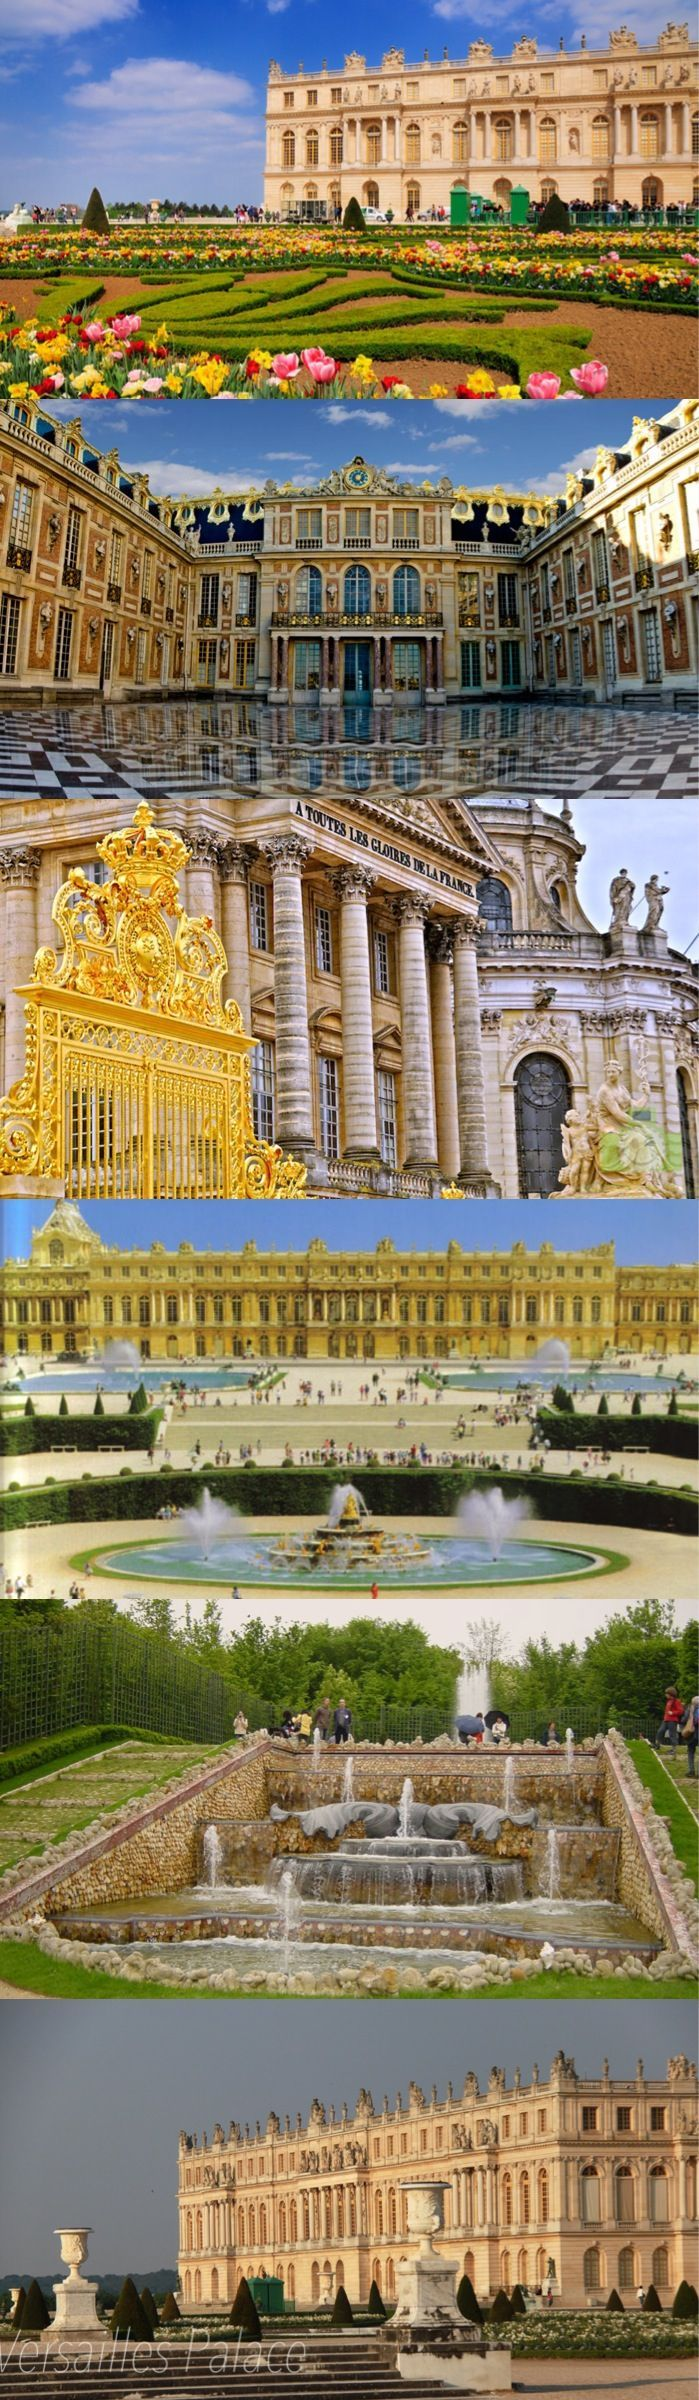 Versalles Palace, France